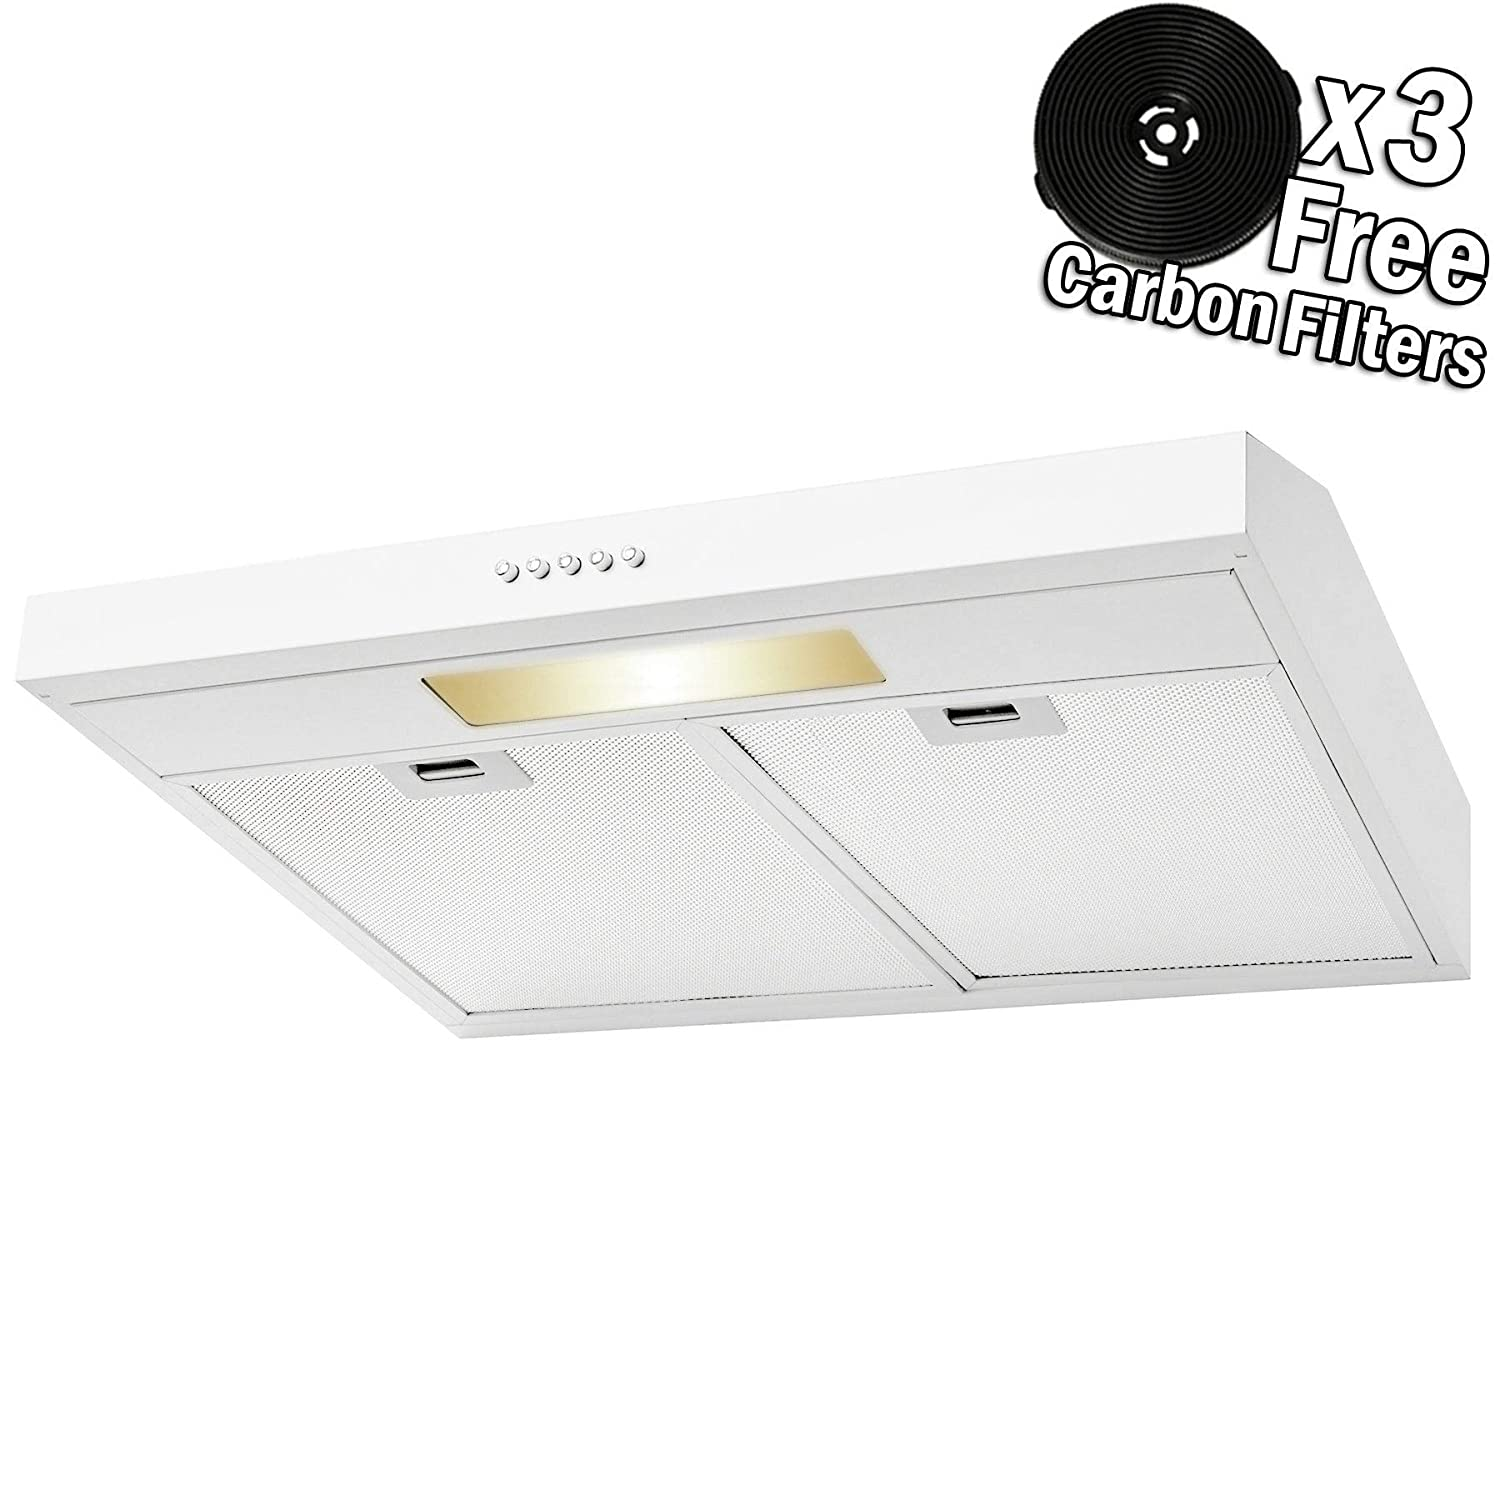 Carbon Filters Lighting Bar 36 in, Black Painted Stainless Steel AKDY Under Cabinet Kitchen Range Hood Cooking Fan with Push Panel